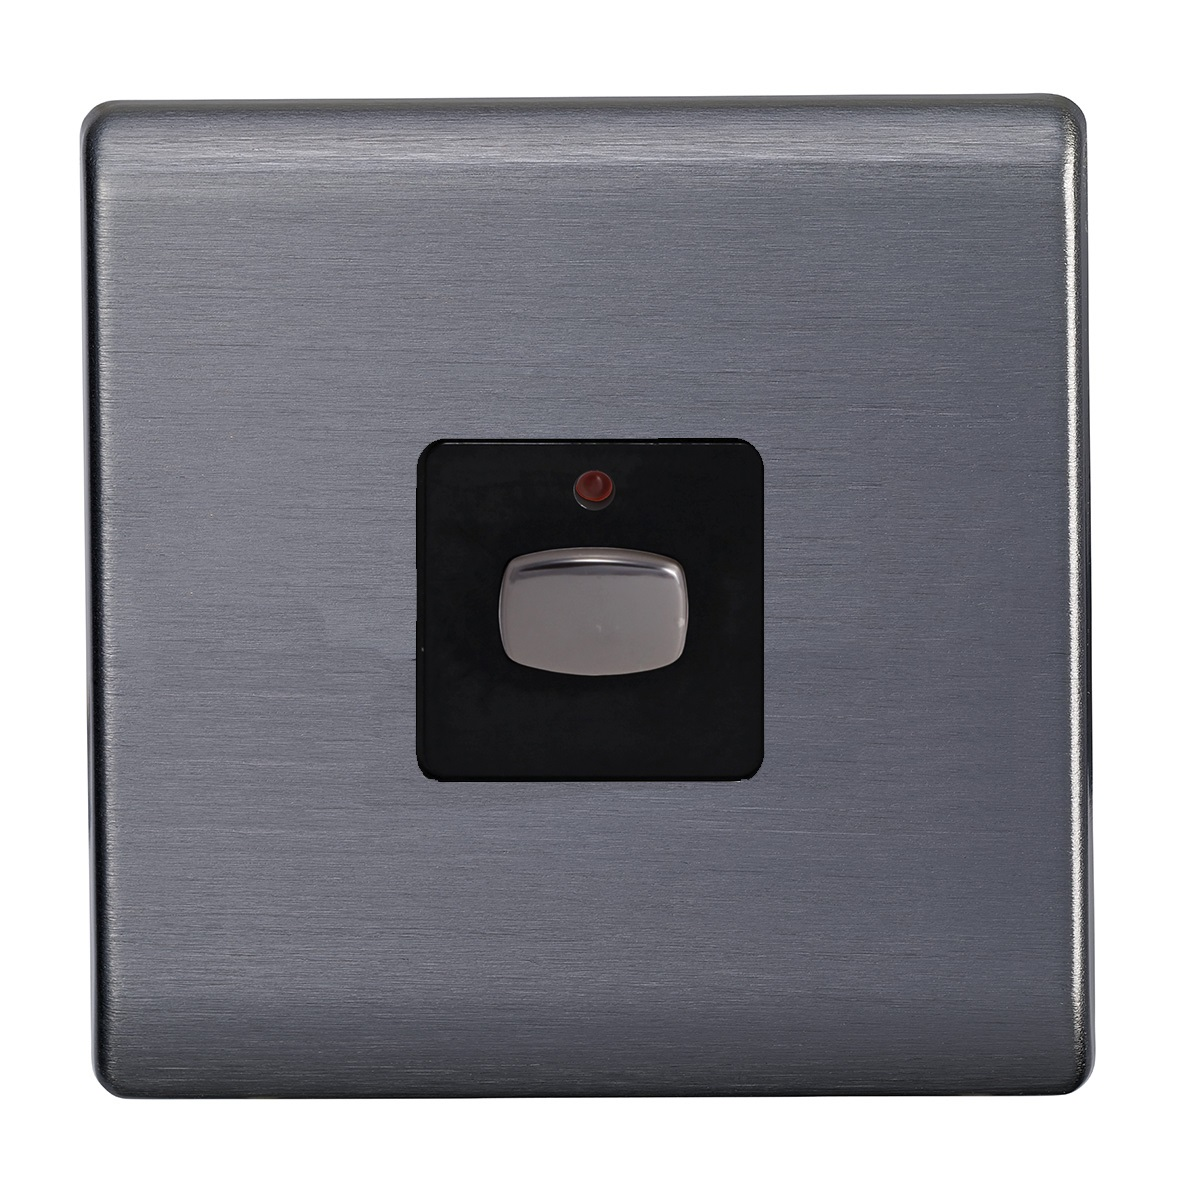 6mm Dimmer switch Brushed Graphite